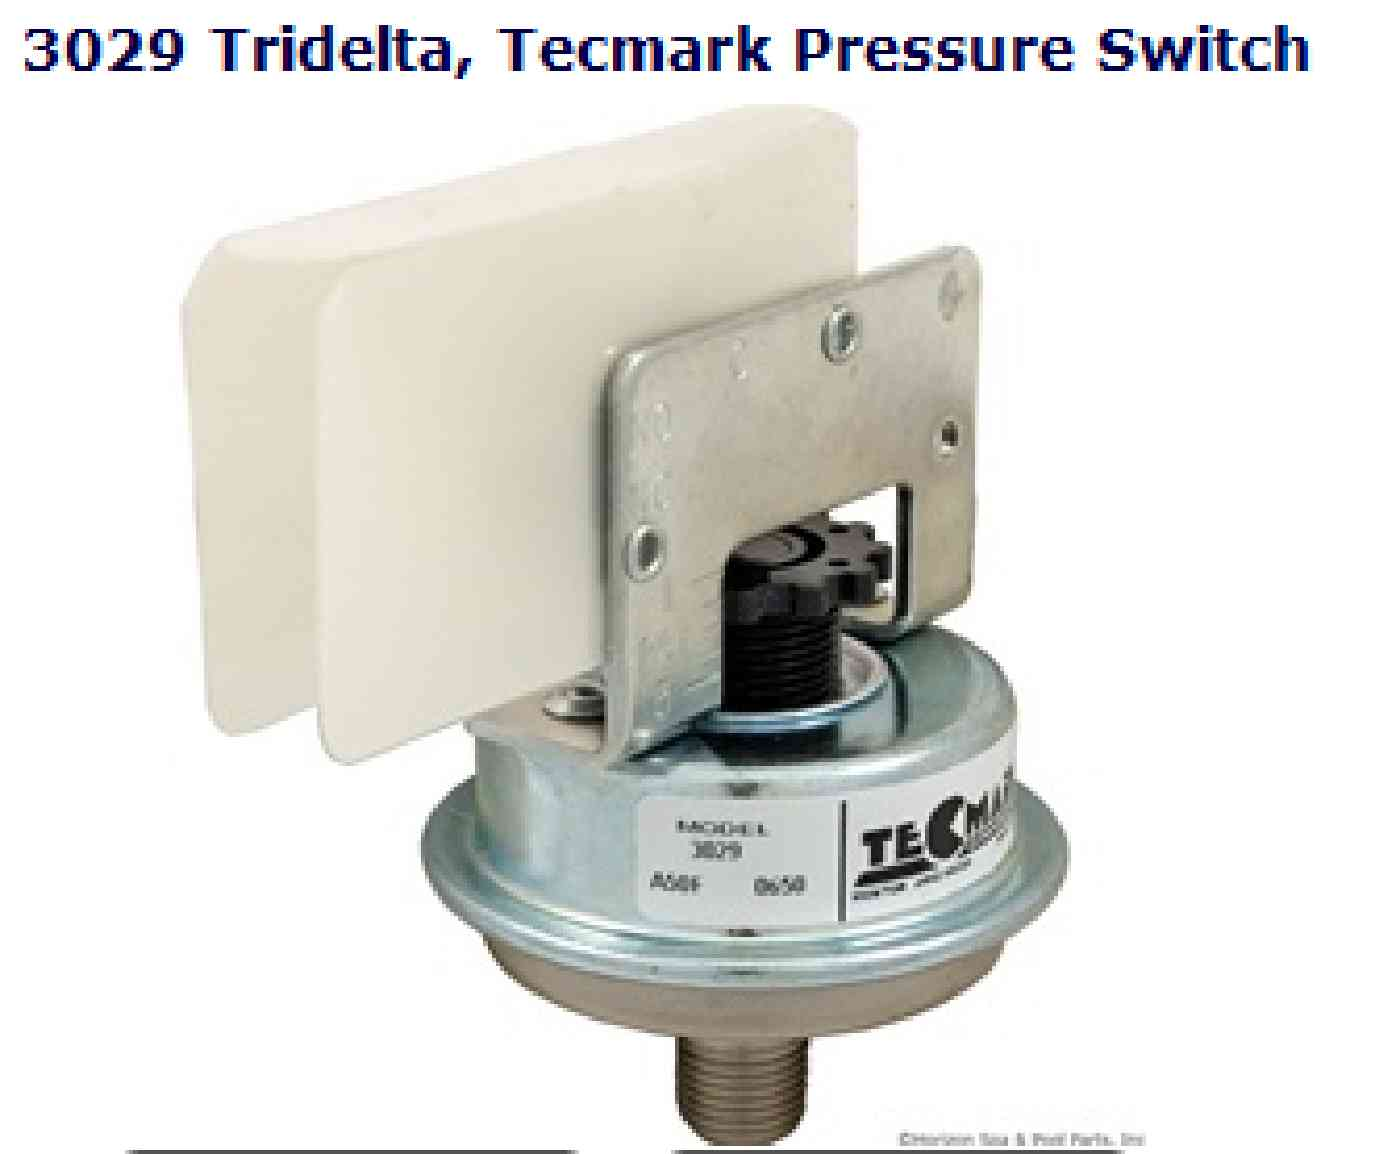 i have a yr 2000 caldera spa which fails with a flo permanently rh justanswer com Hot Tub Pressure Switch Adjustment Hot Tub Pressure Switch Diagnosis